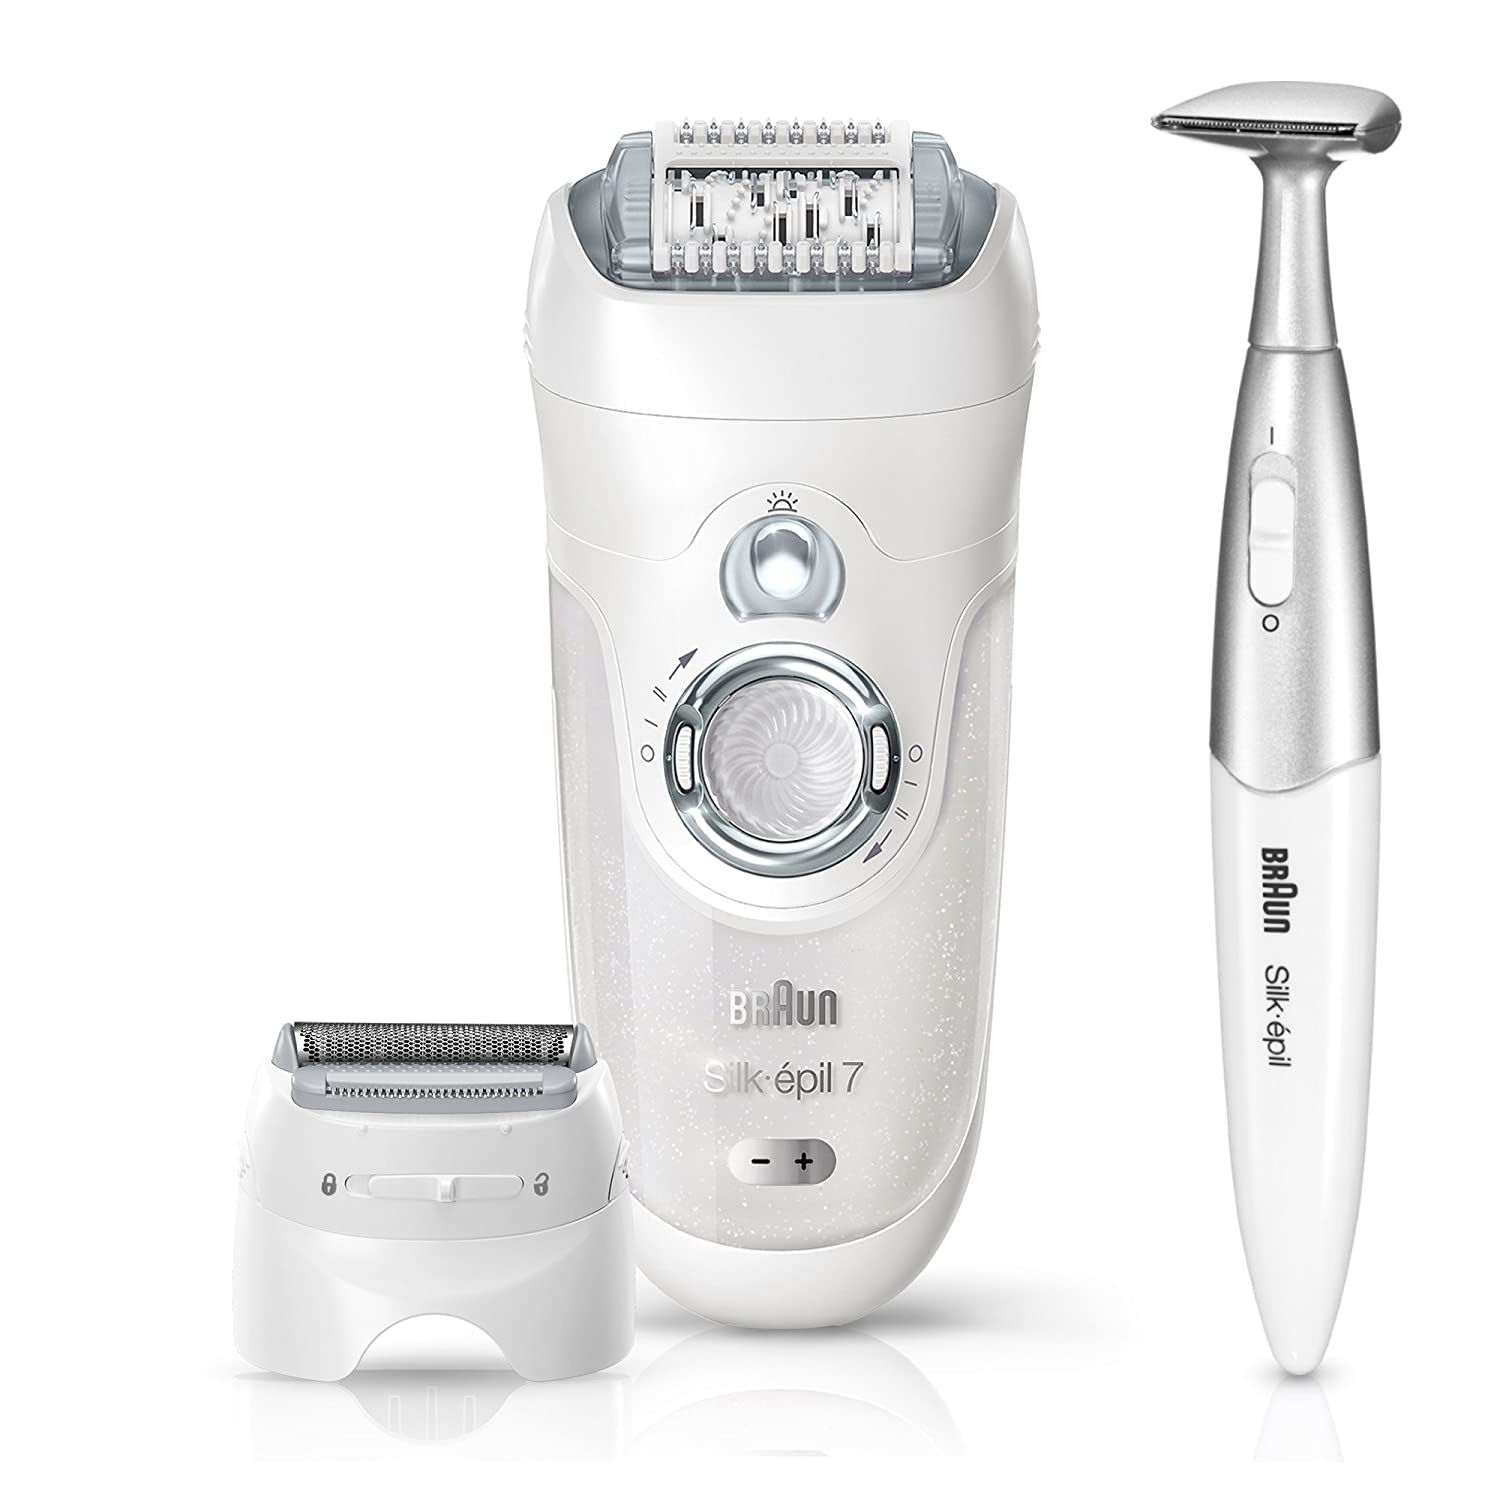 Braun Silk-épil 7 7-561 Epilator for Women, Wet & Dry Hair Removal, White/Silver, with 8 Extras Including Bikini Trimmer